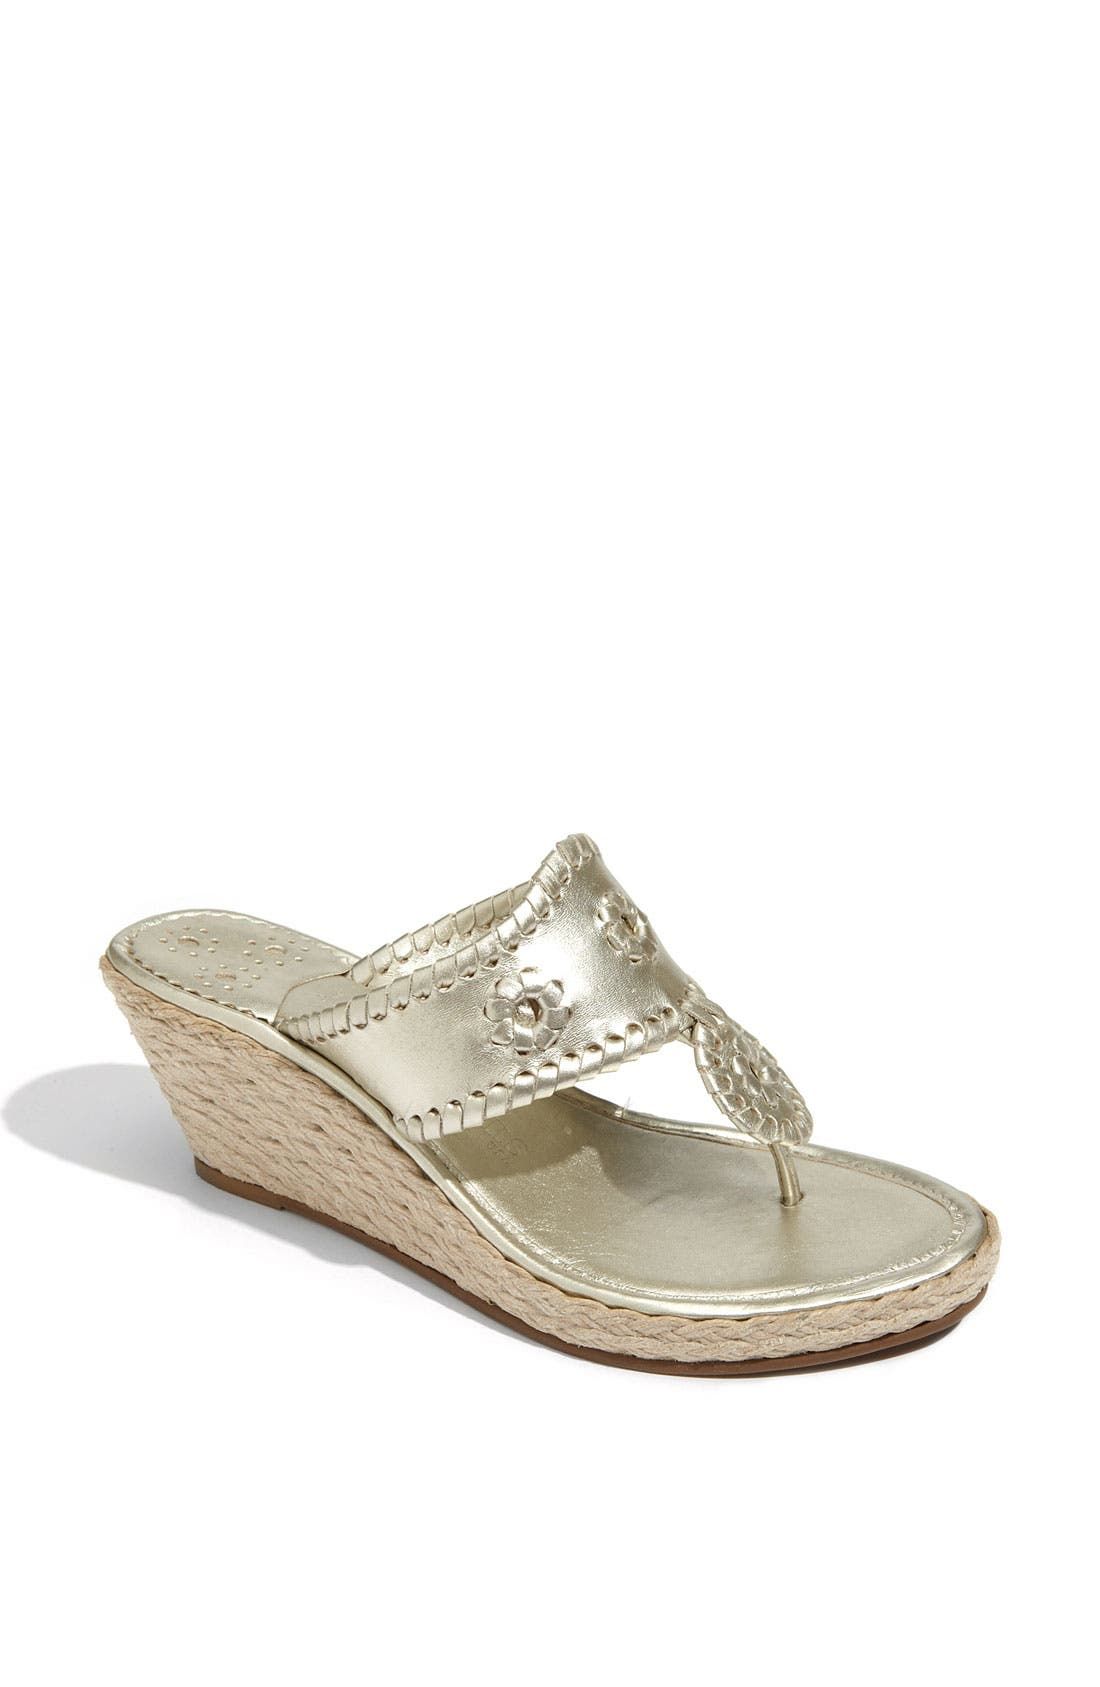 'Marbella' Rope Wedge Sandal,                             Main thumbnail 1, color,                             042